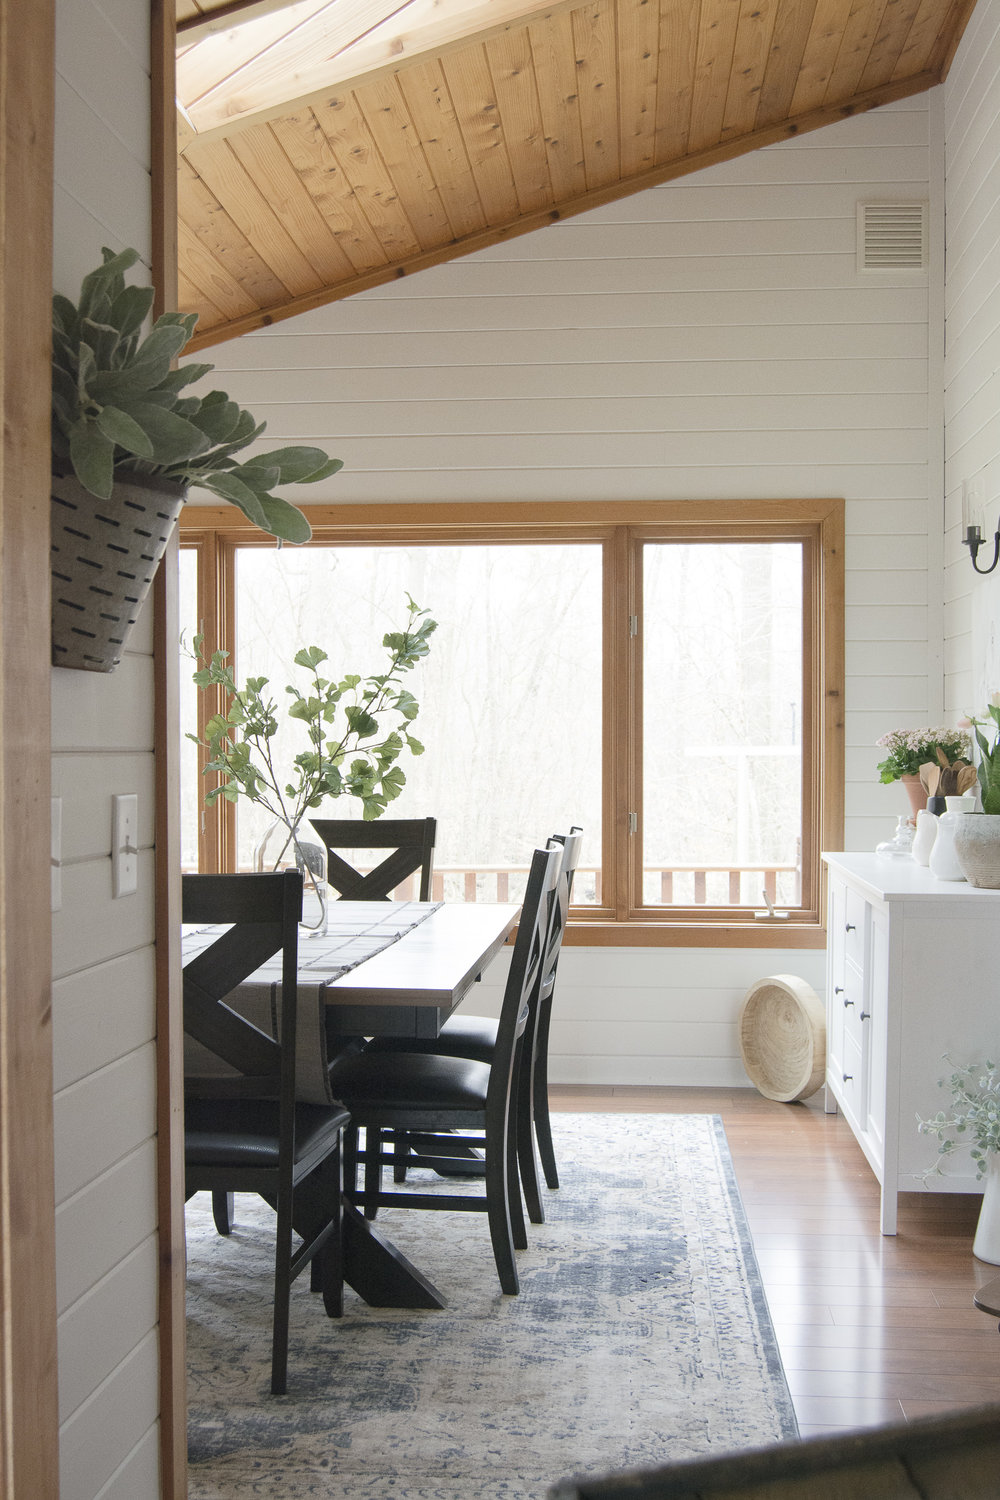 Working with wood trim can be a challenge, but this farmhouse dining room proves that it can be done well! They kept things bright and airy with white walls and some light colored furniture and decor.